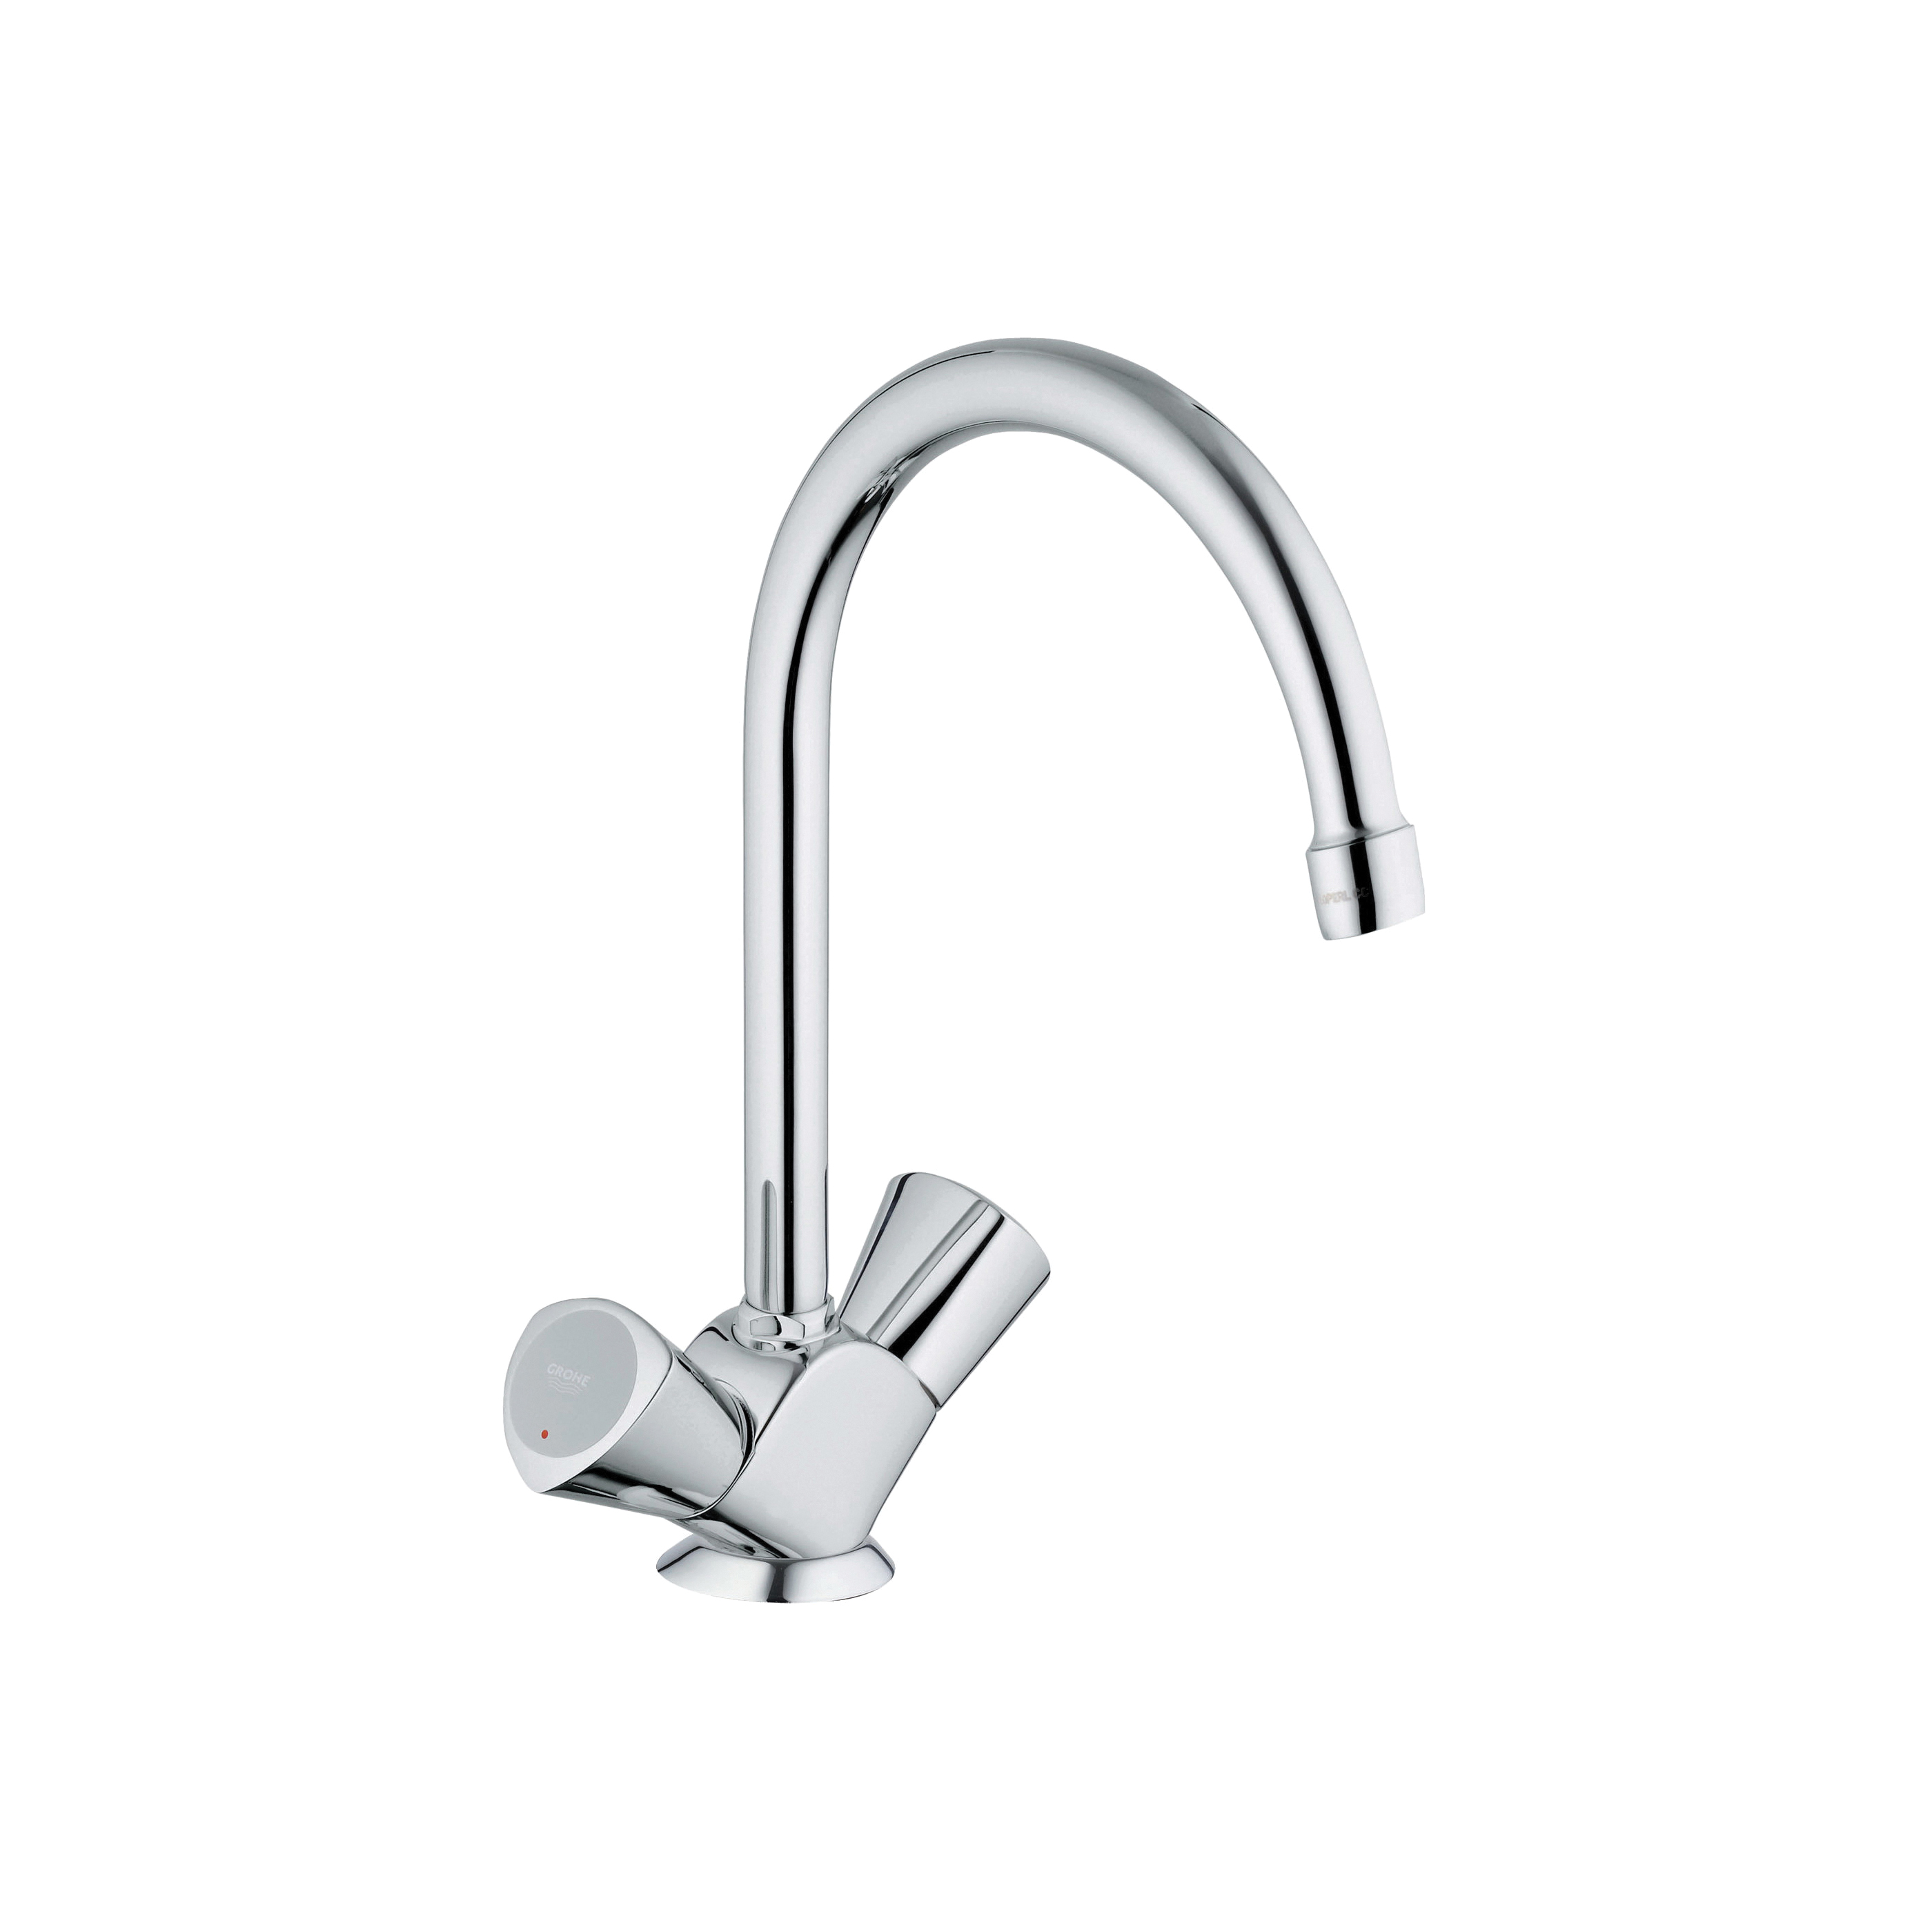 GROHE 31074001 Costa S Sink Mixer, 1.75 gpm, 1 Handle, Chrome Plated, Import